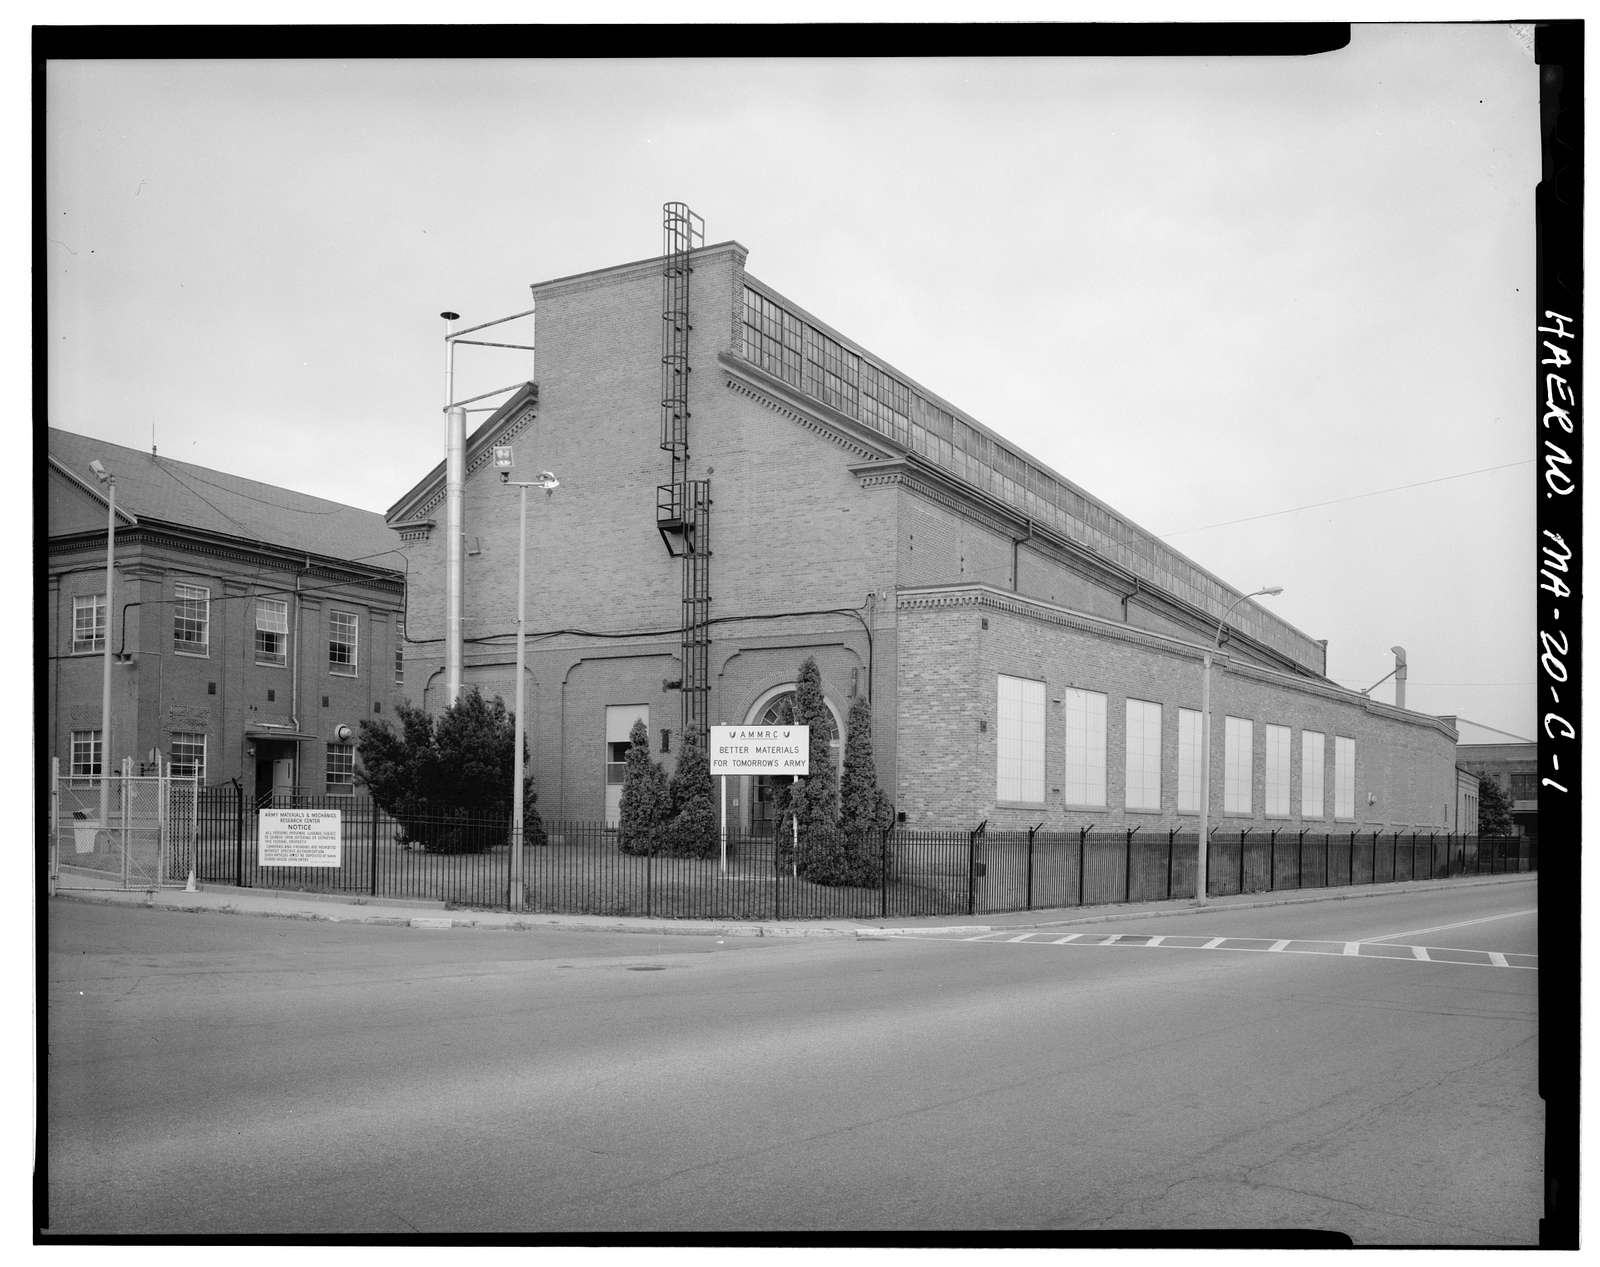 Watertown Arsenal, Building No. 43, Arsenal Street, Watertown, Middlesex County, MA